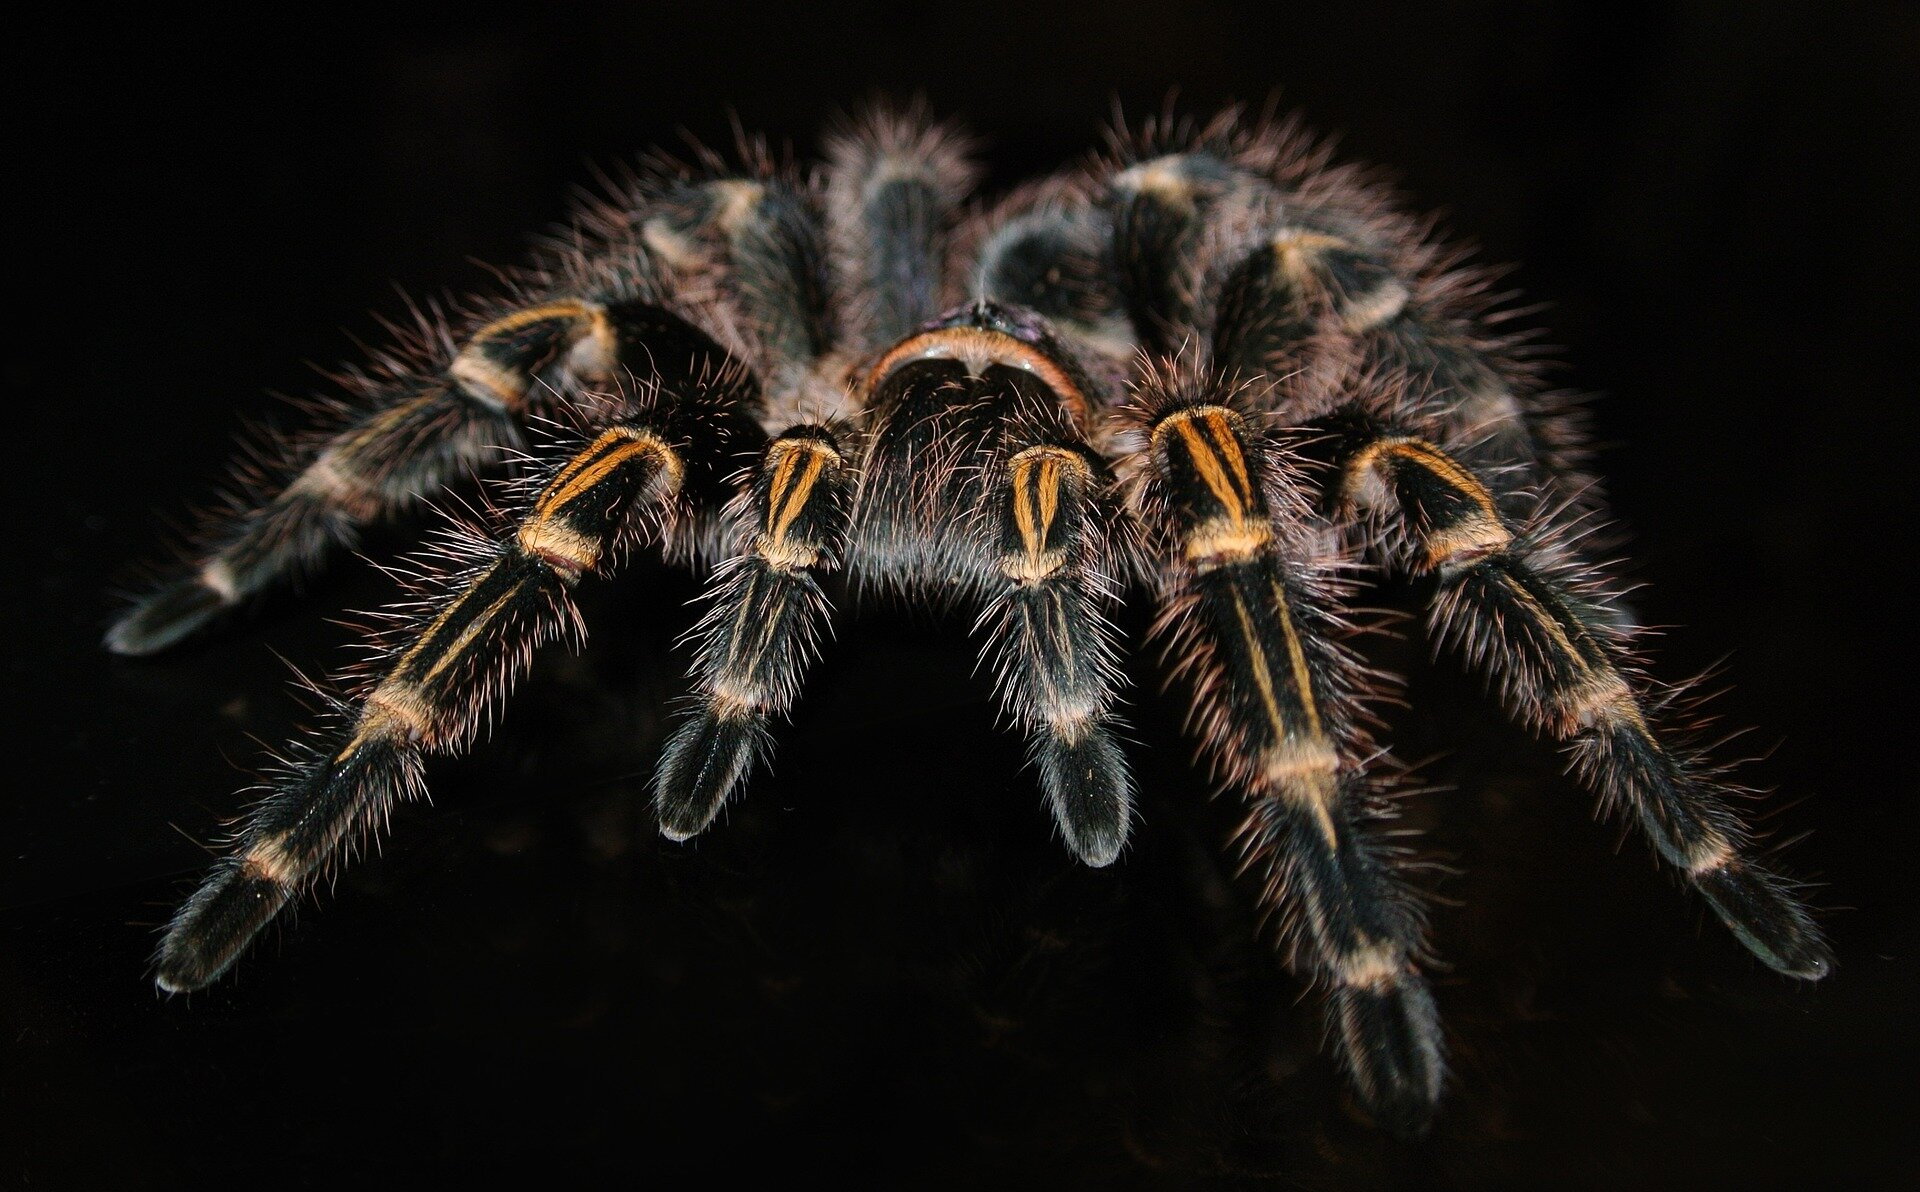 Tarantula's ubiquity traced back to the cretaceous - Phys.org